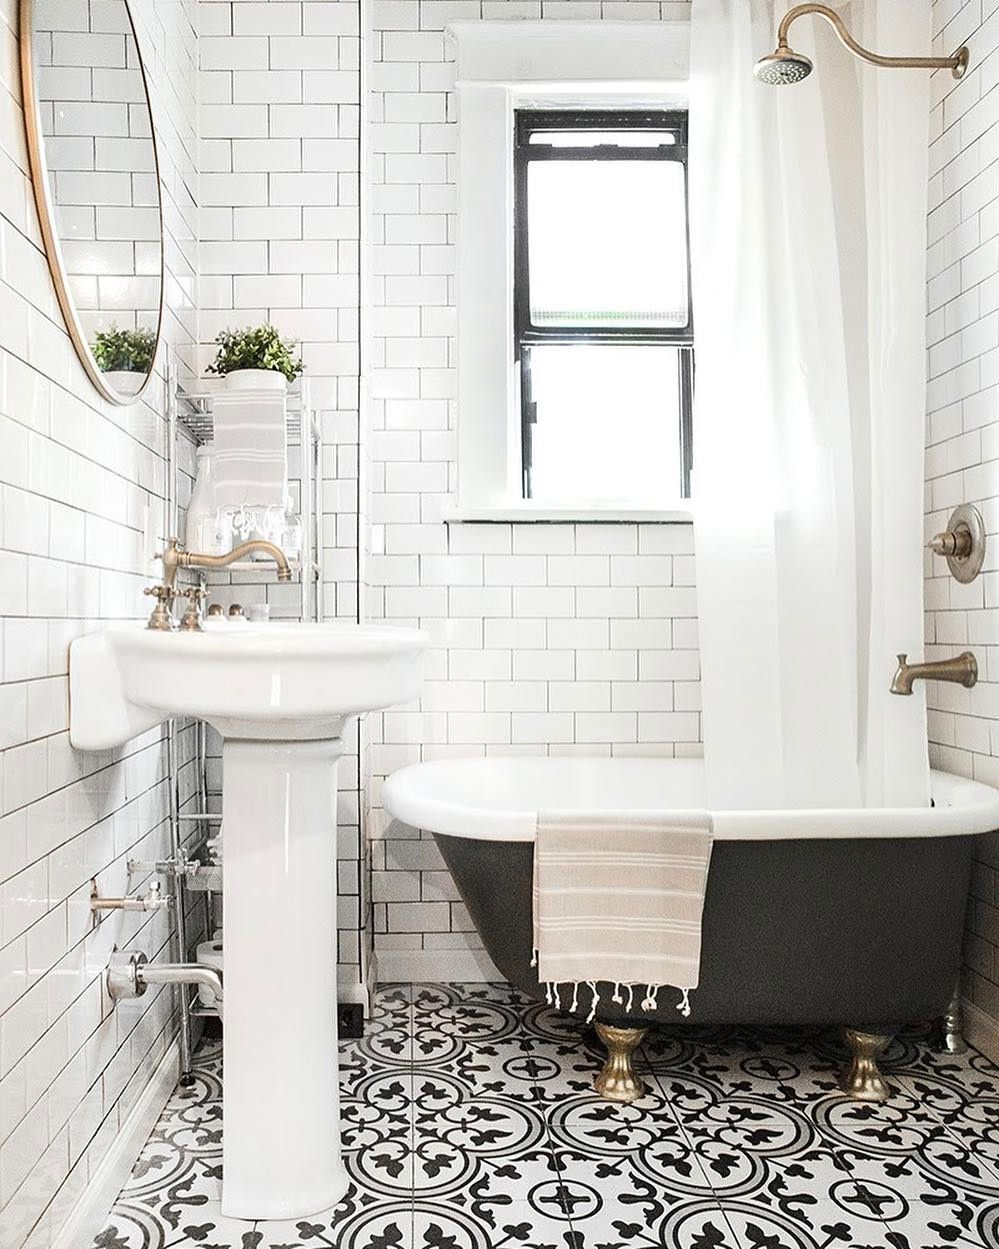 A Simple Bathroom Design With Beautiful Tile Pattern To Add Some Life We Love What This Has Done Their Early 1900s Townhouse Make Sure Come